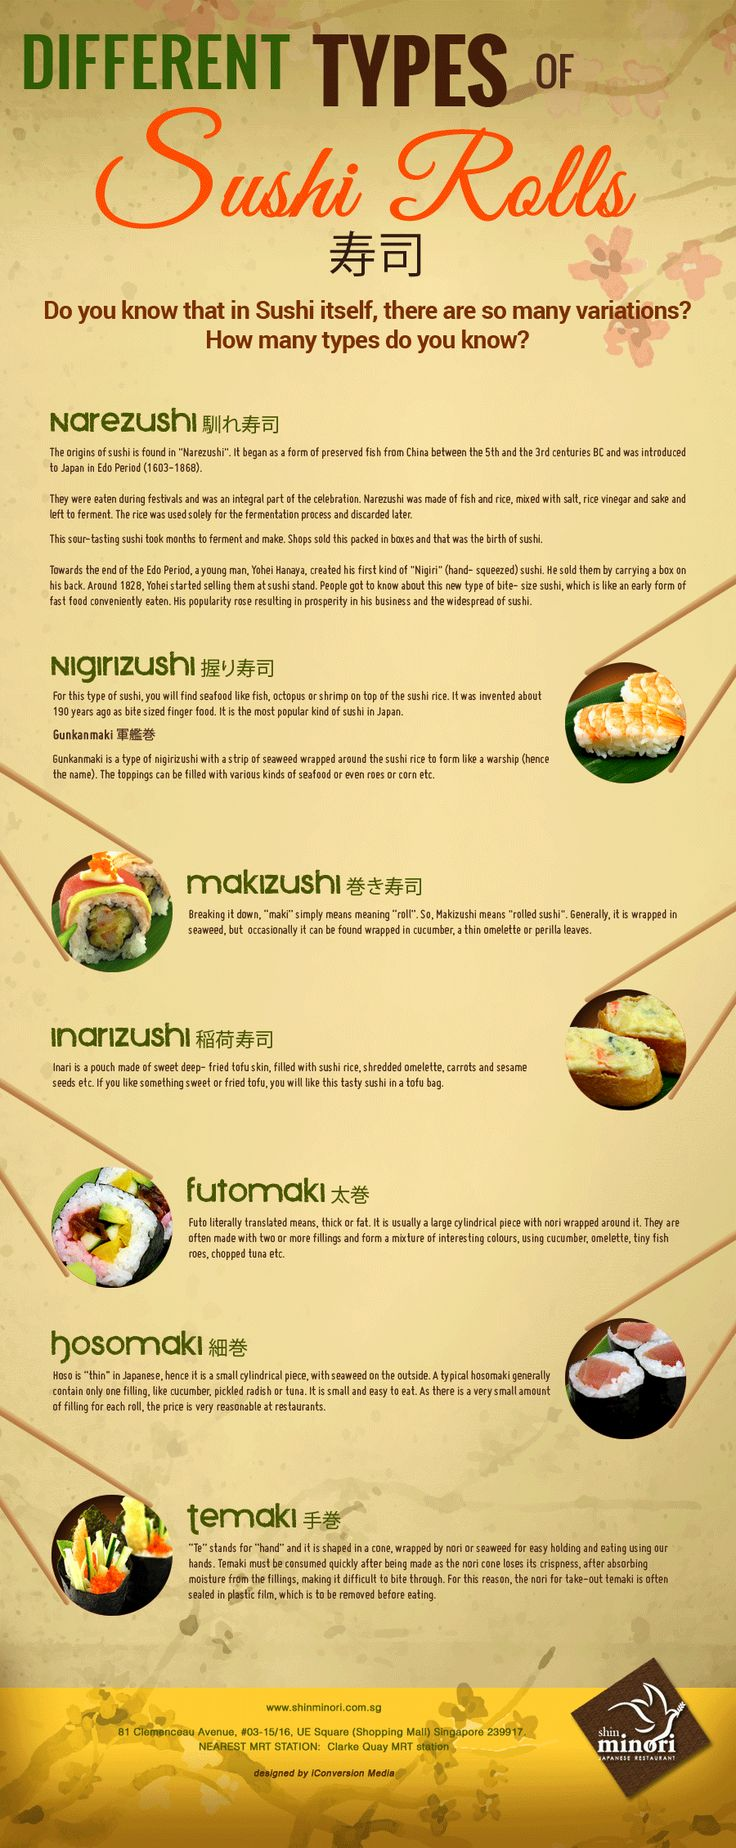 Do you know the Different Types of #Sushi Rolls? #JapaneseFood Infographic http://sumo.ly/kOV6 #infographics